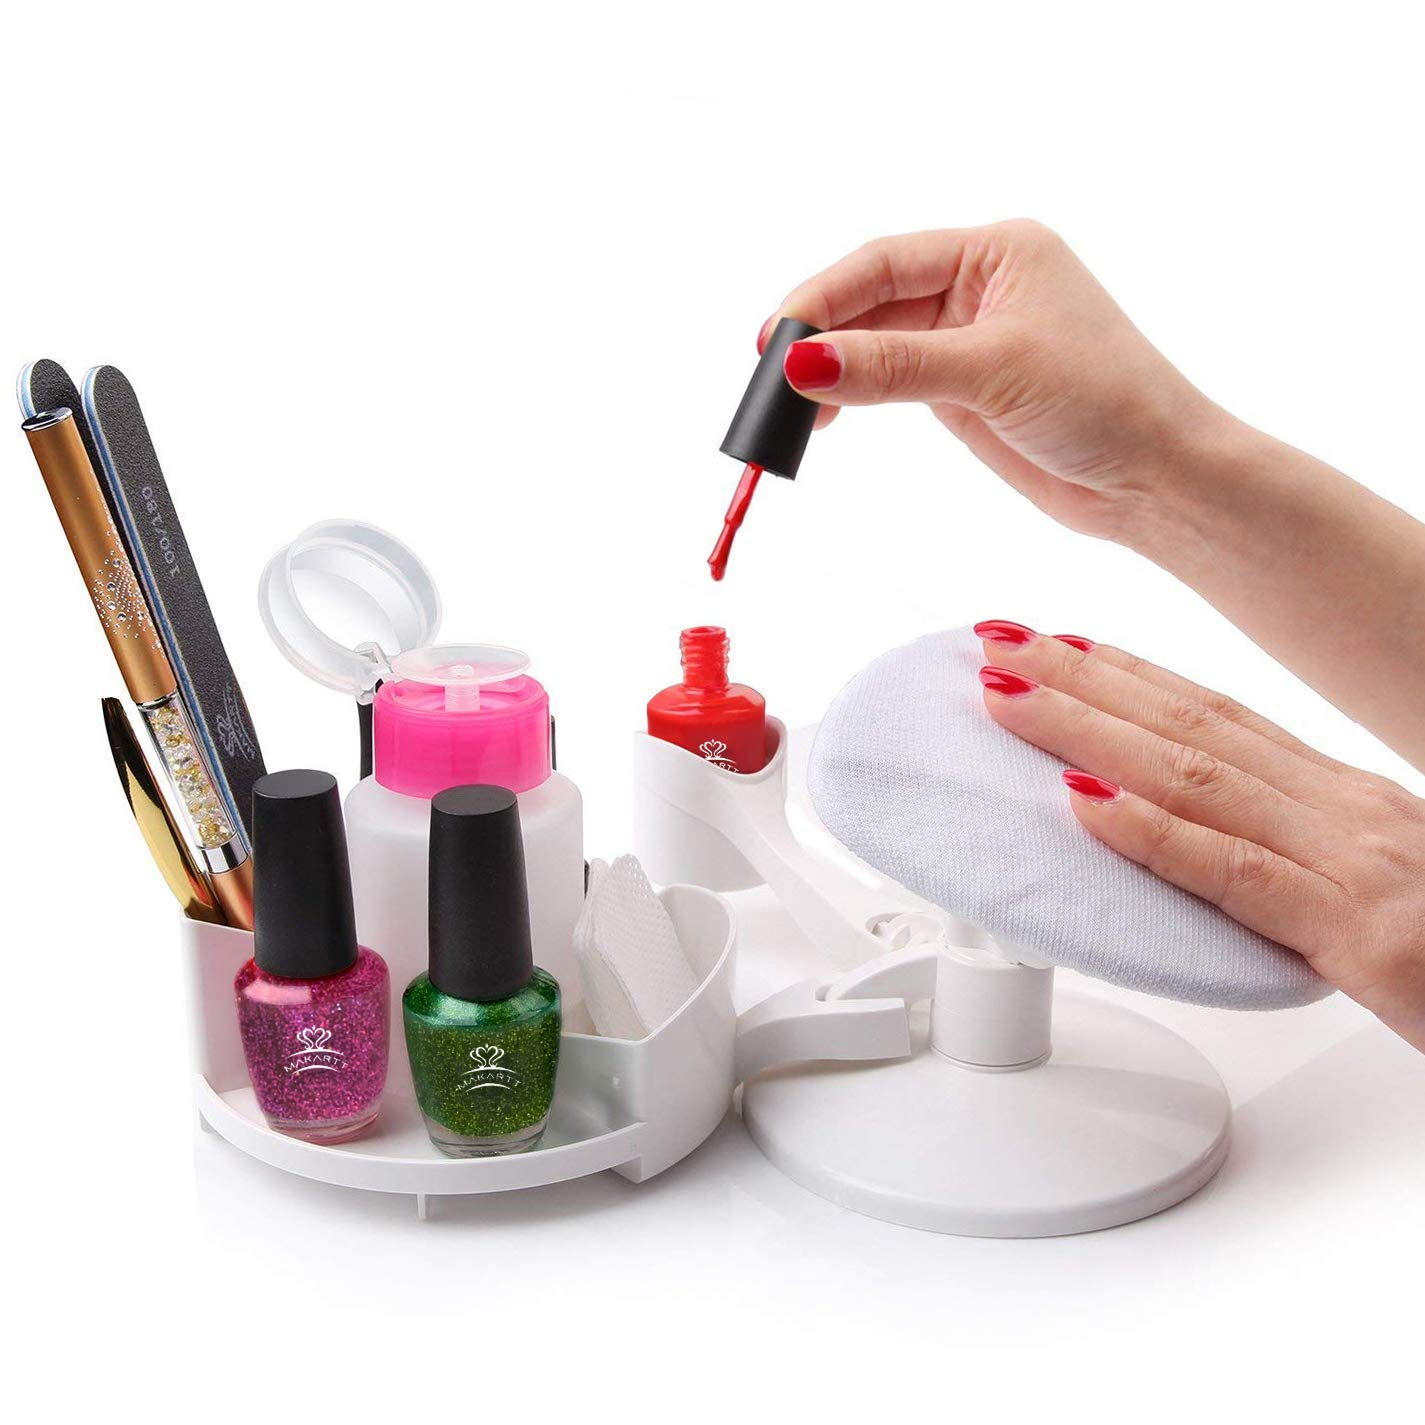 Makartt Nail Gel Polish Nail Design Base Studio Tool with Gel Holders and Multi Angle Rest, Great Support for Nail Salon Home DIY Manicure Pedicure Nail Art : Beauty